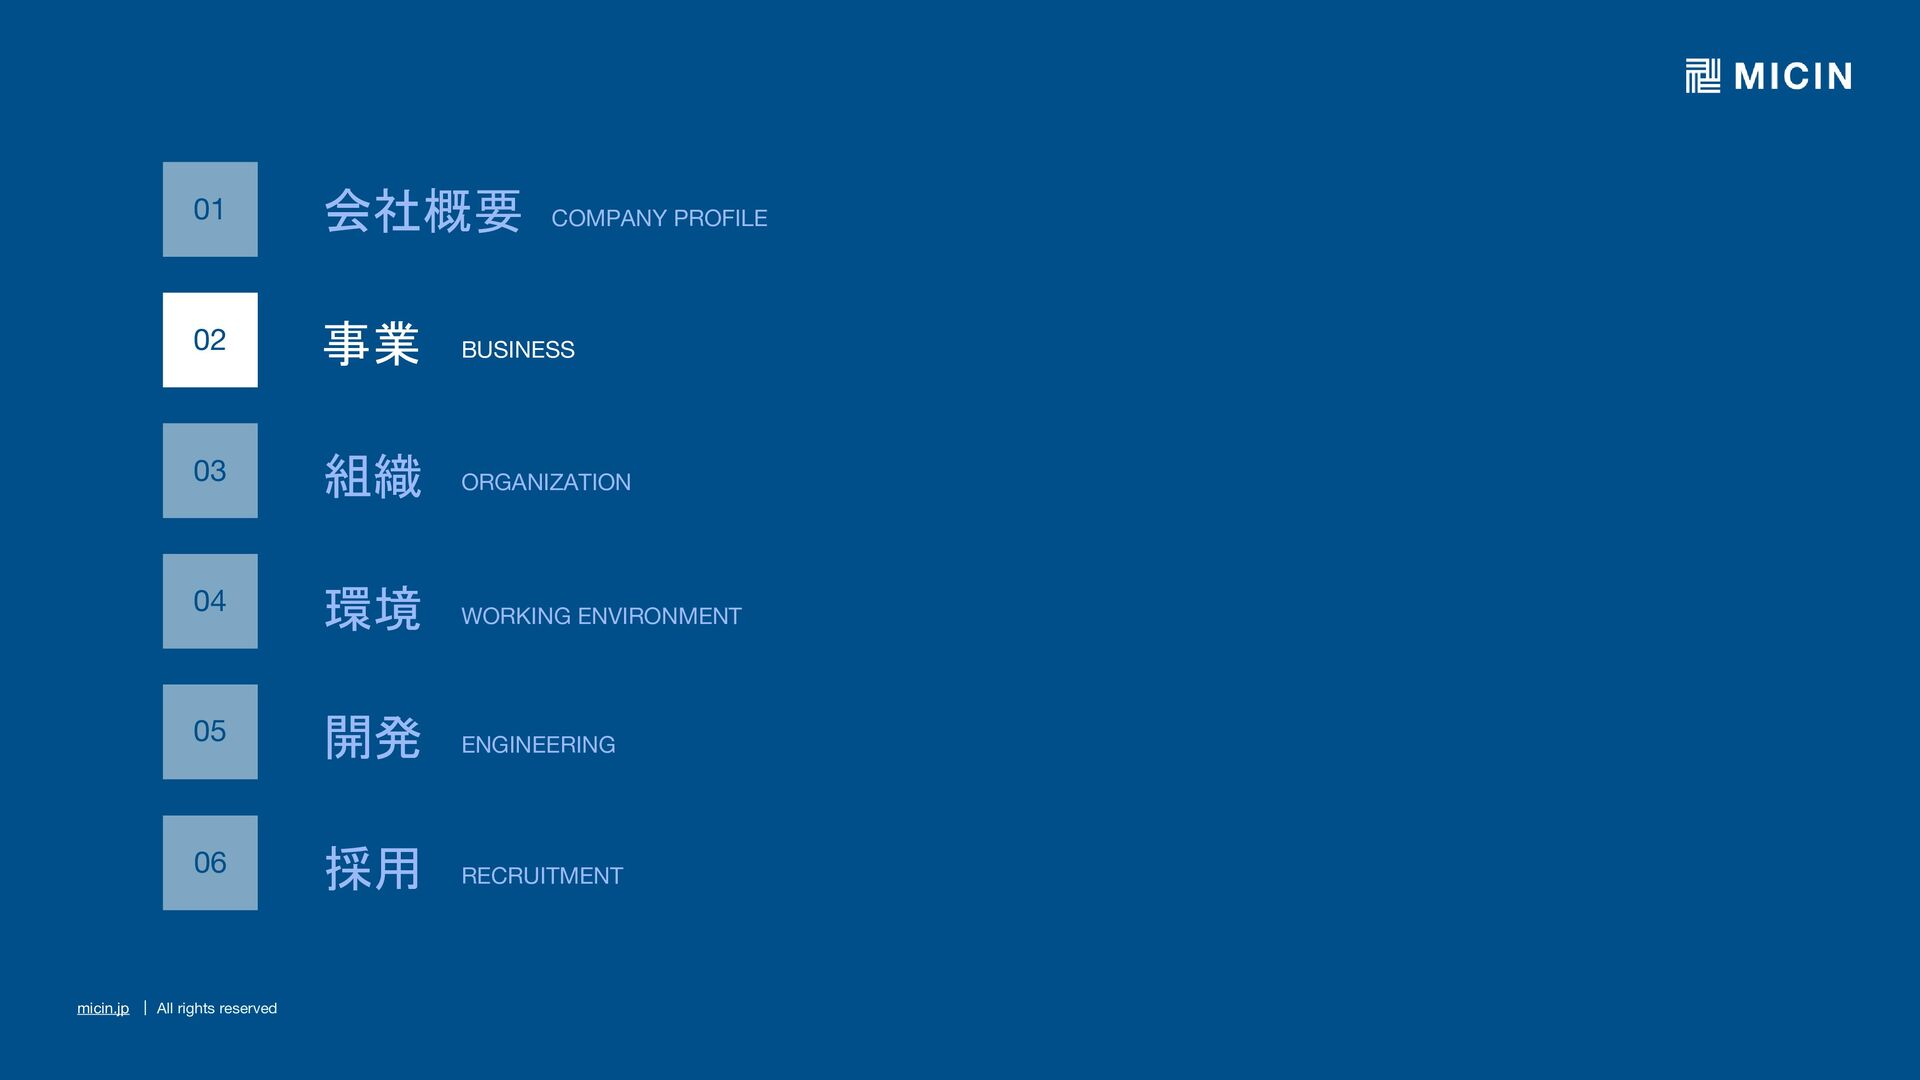 micin.jp   All rights reserved 6 会社概要 COMPANY P...